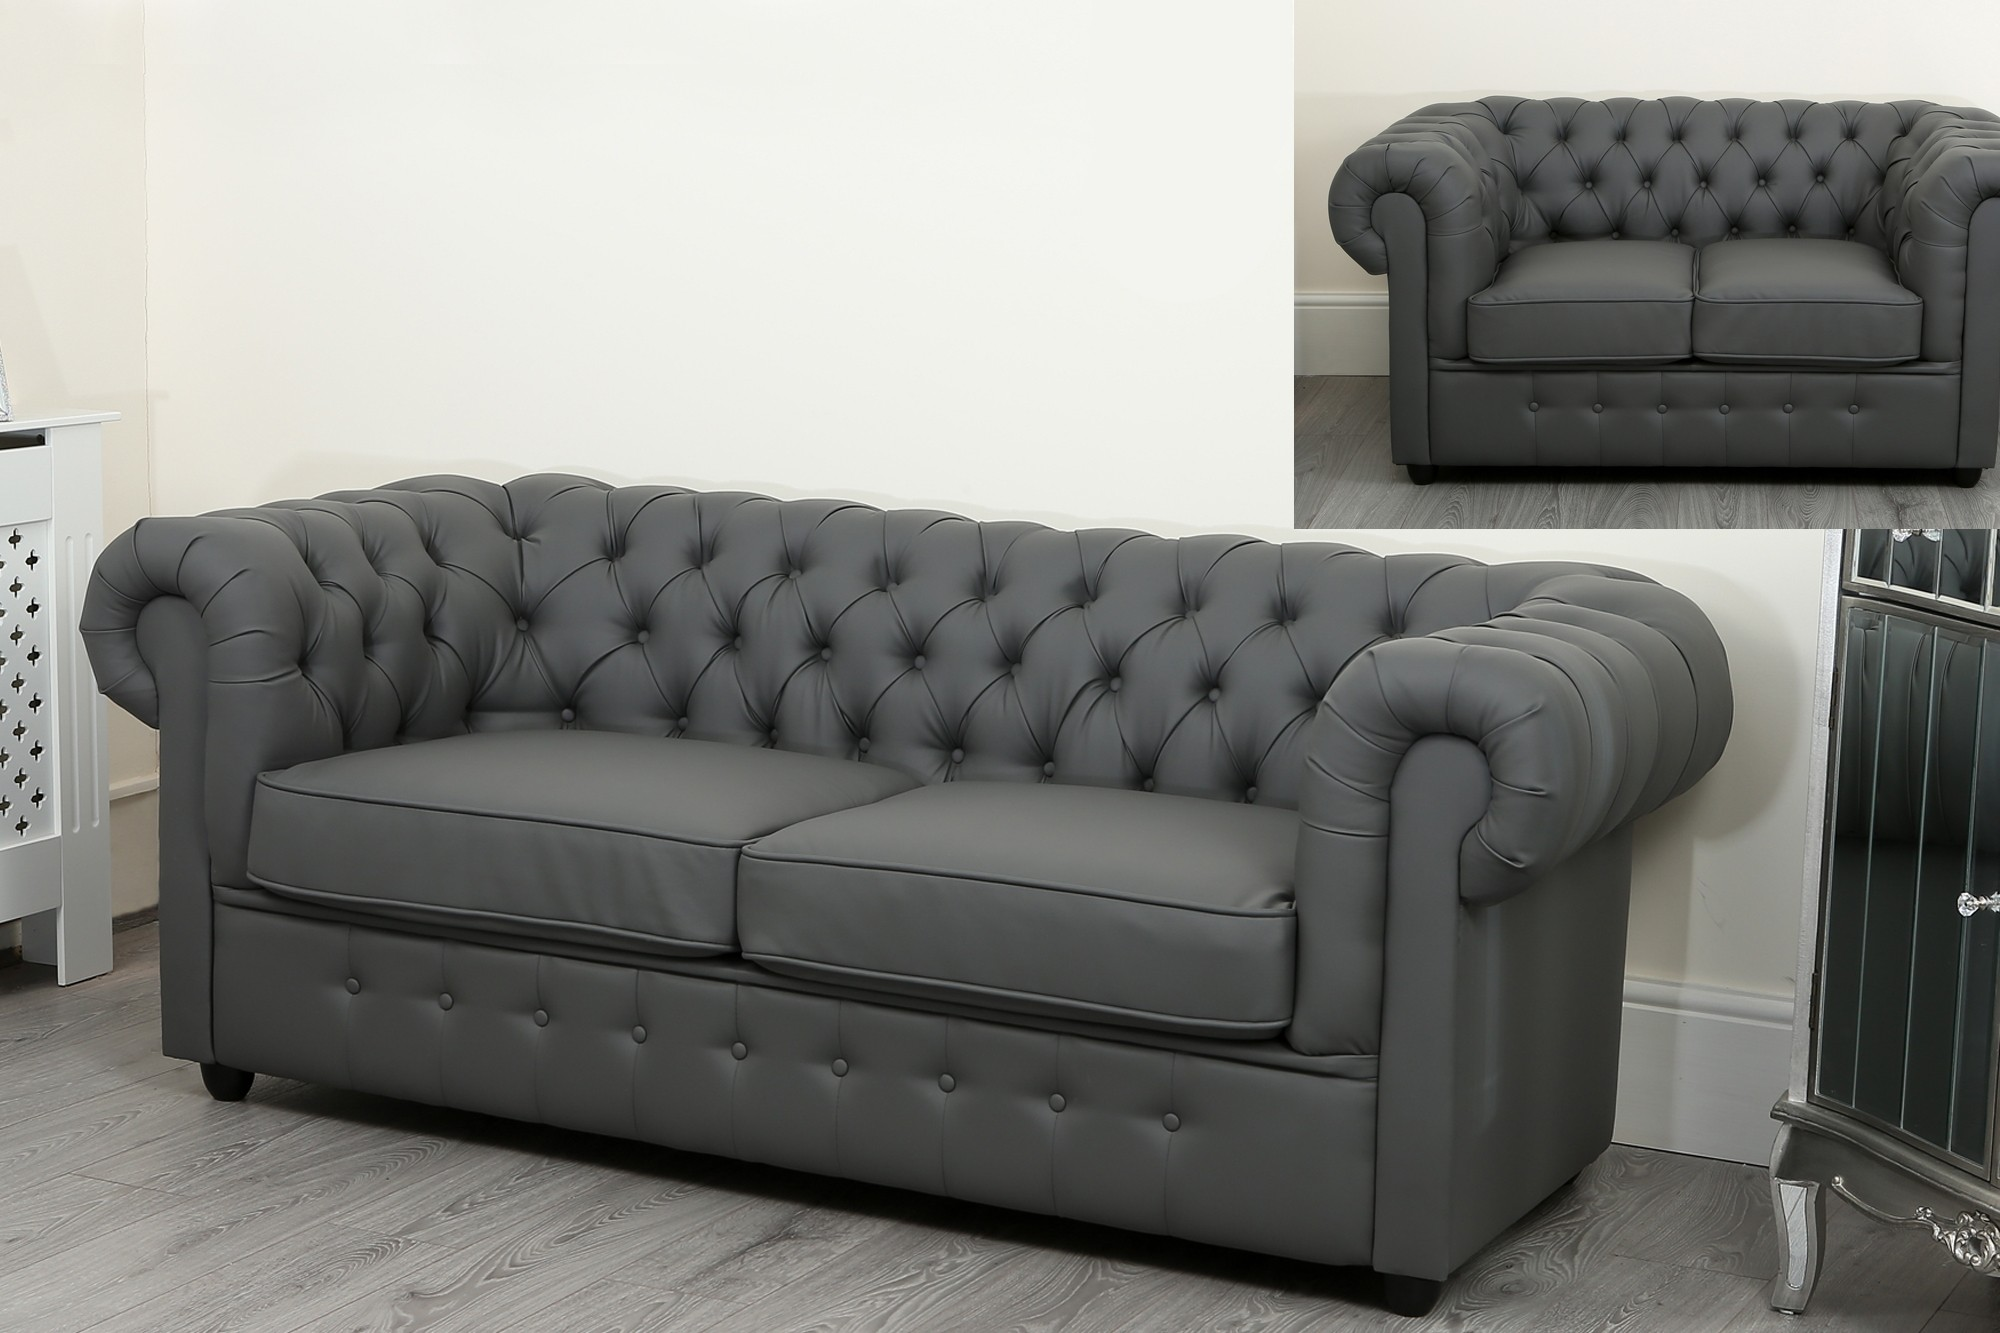 empire grey faux leather chesterfield sofa suite abreo home furniture. Black Bedroom Furniture Sets. Home Design Ideas